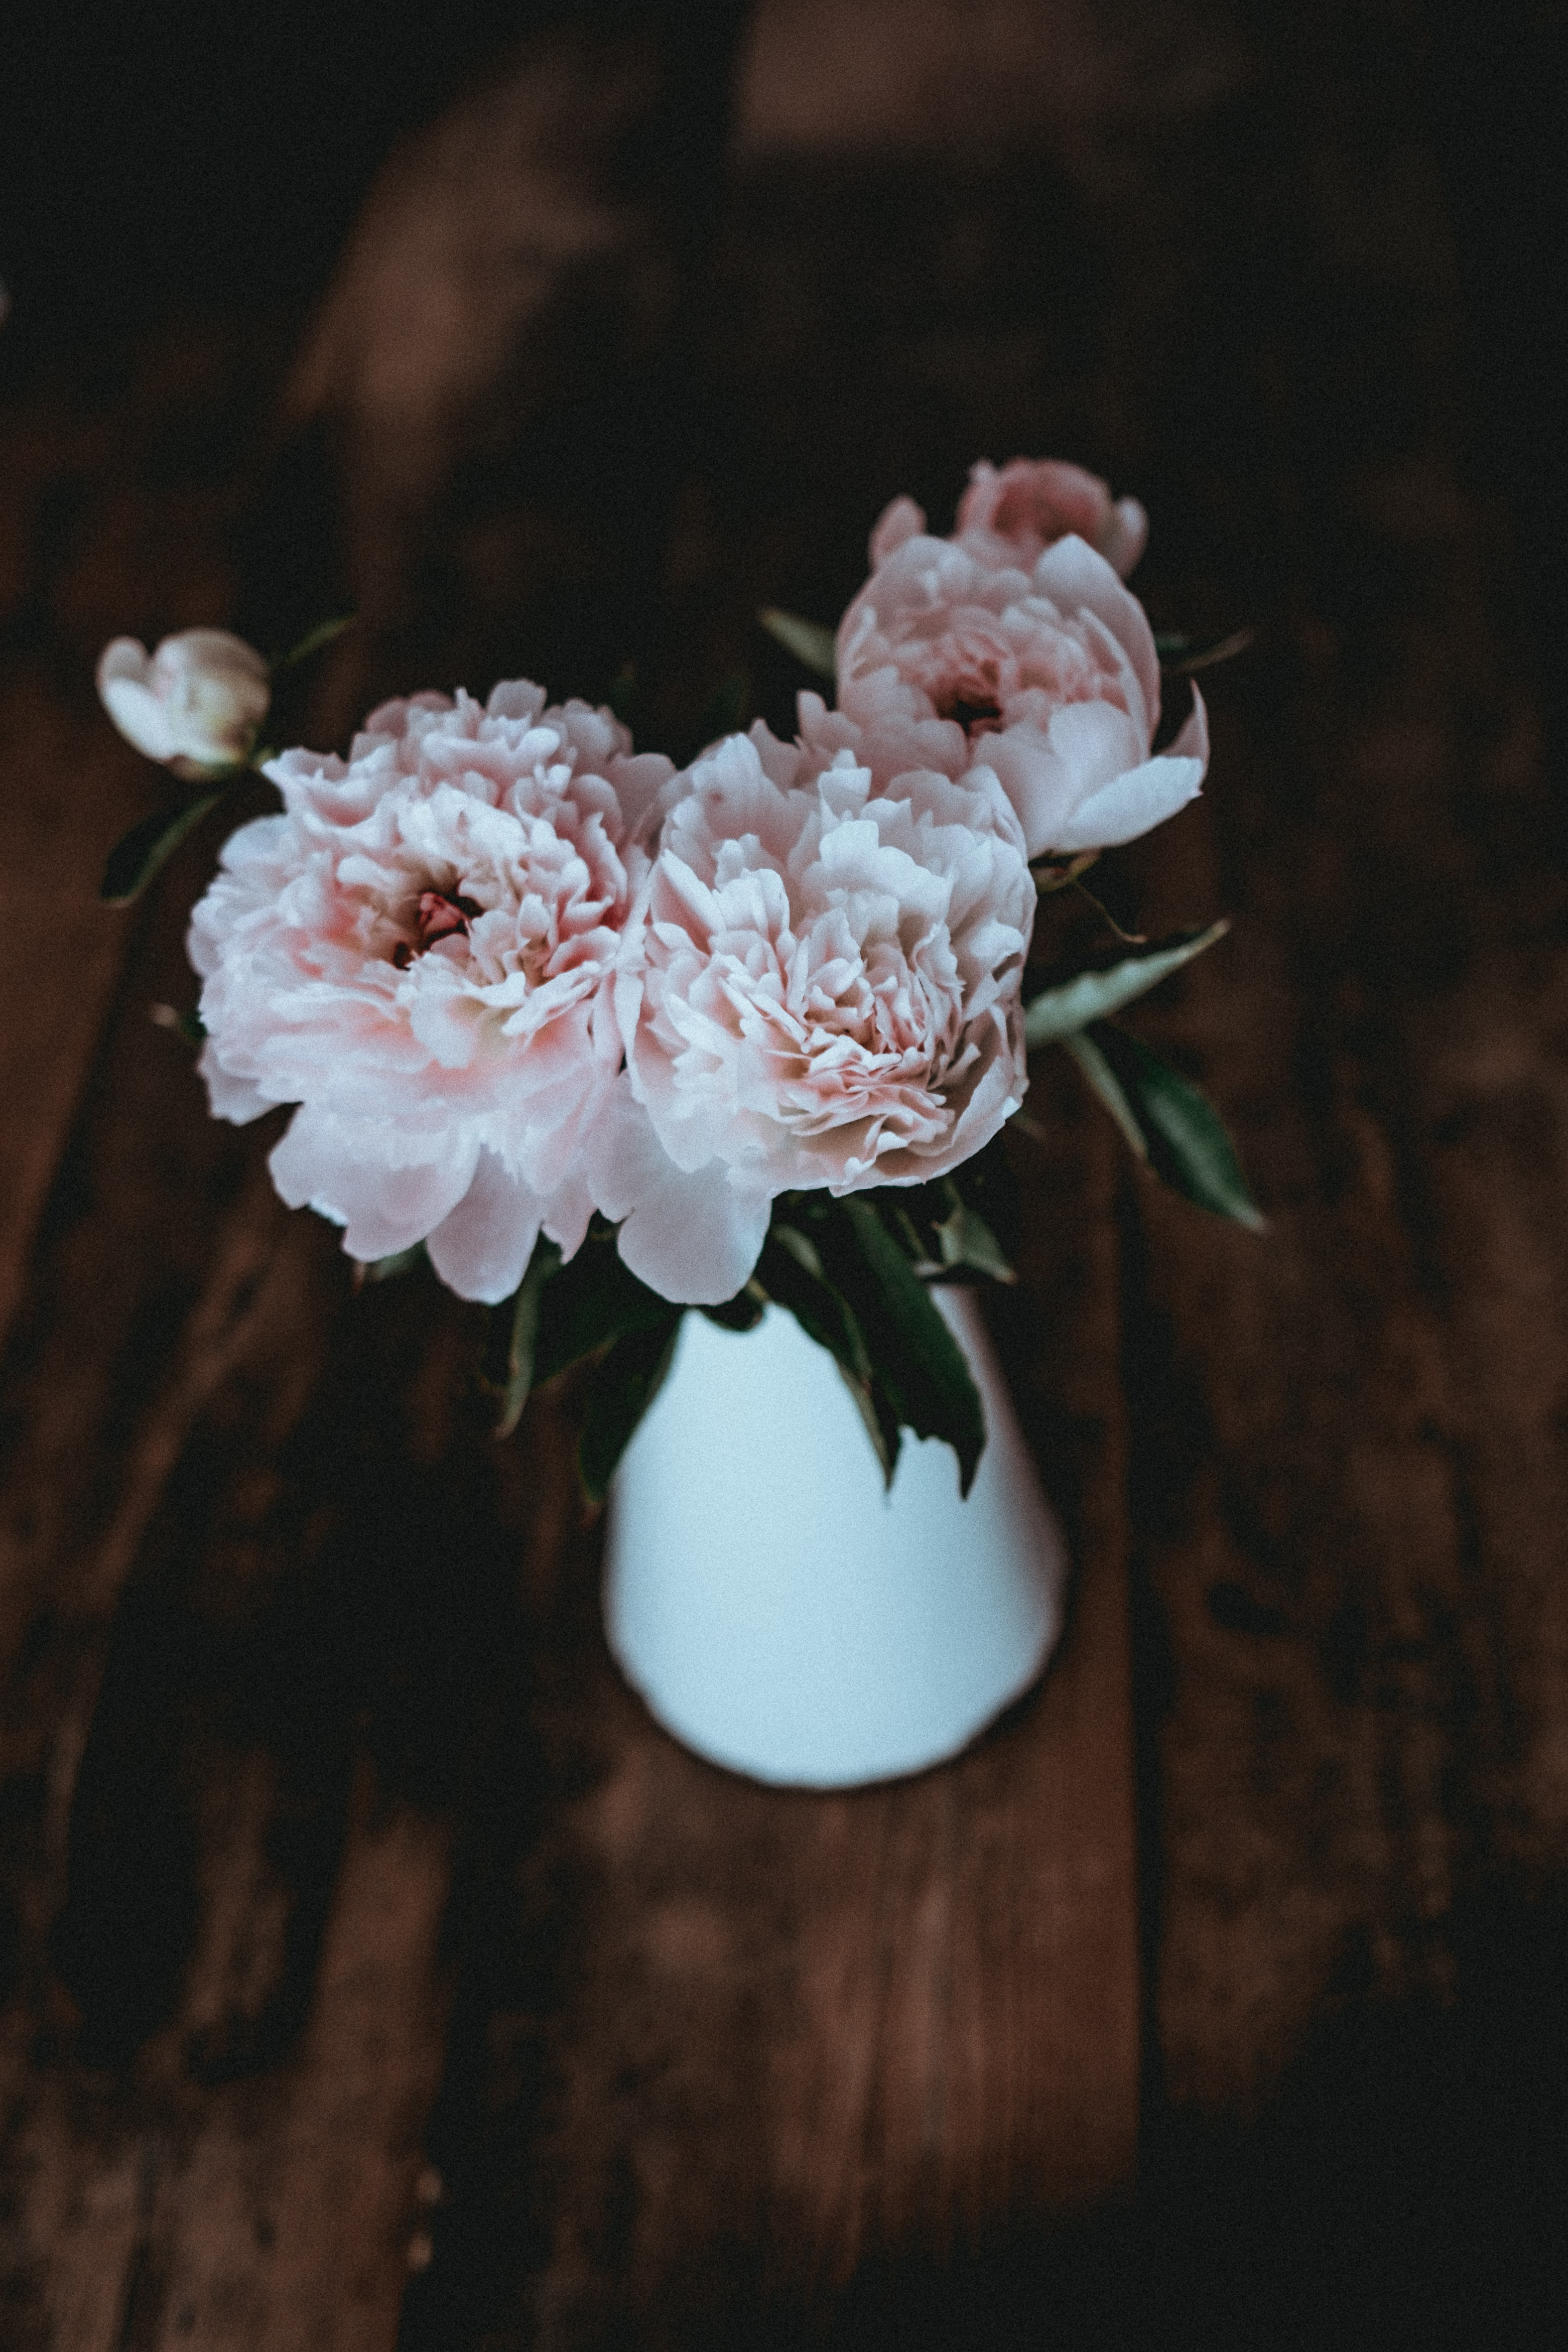 shallow focus photography of pink carnation flower table centerpiec & Flower Vase Pictures [HD] | Download Free Images on Unsplash